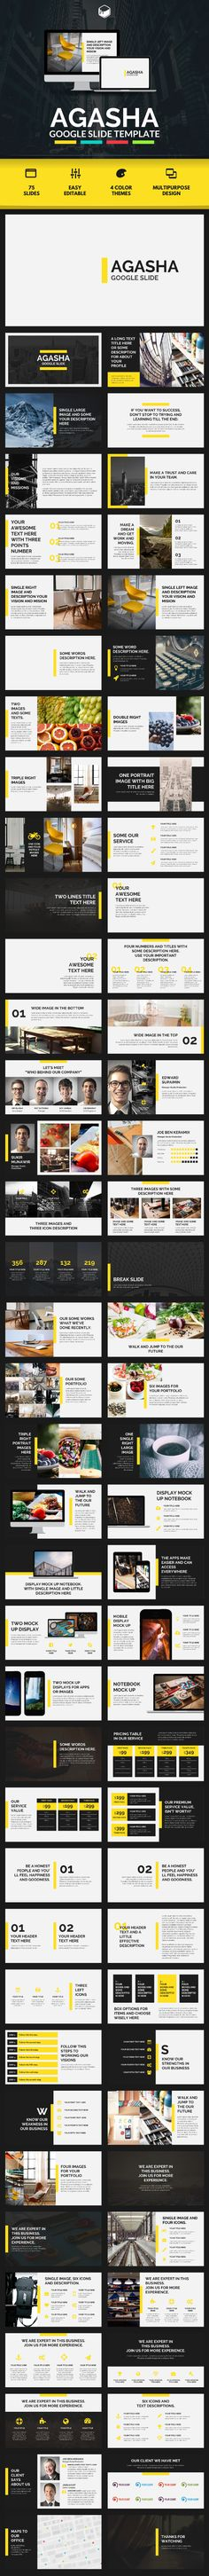 AGASHA - Google Slide Template  • Only available here ➝ http://graphicriver.net/item/agasha-google-slide-template/16812960?ref=pxcr